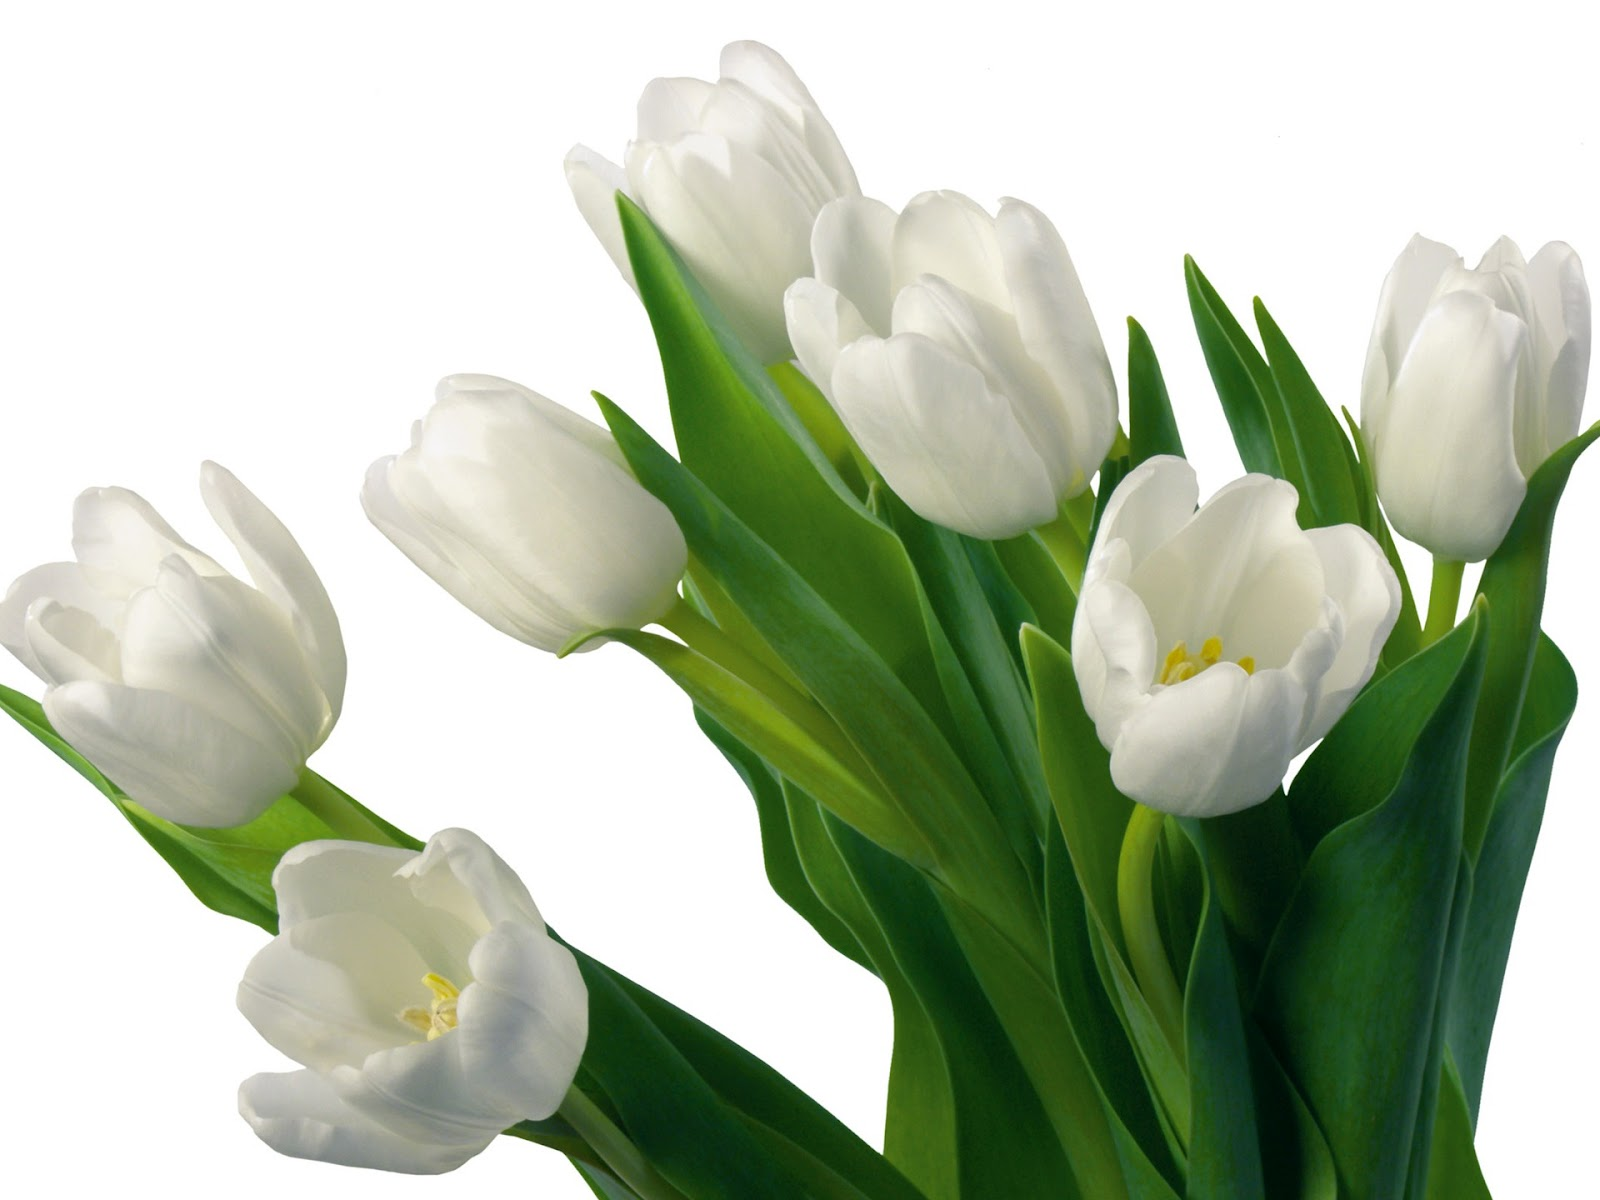 flowers for flower lovers. white tulips flowers., Beautiful flower